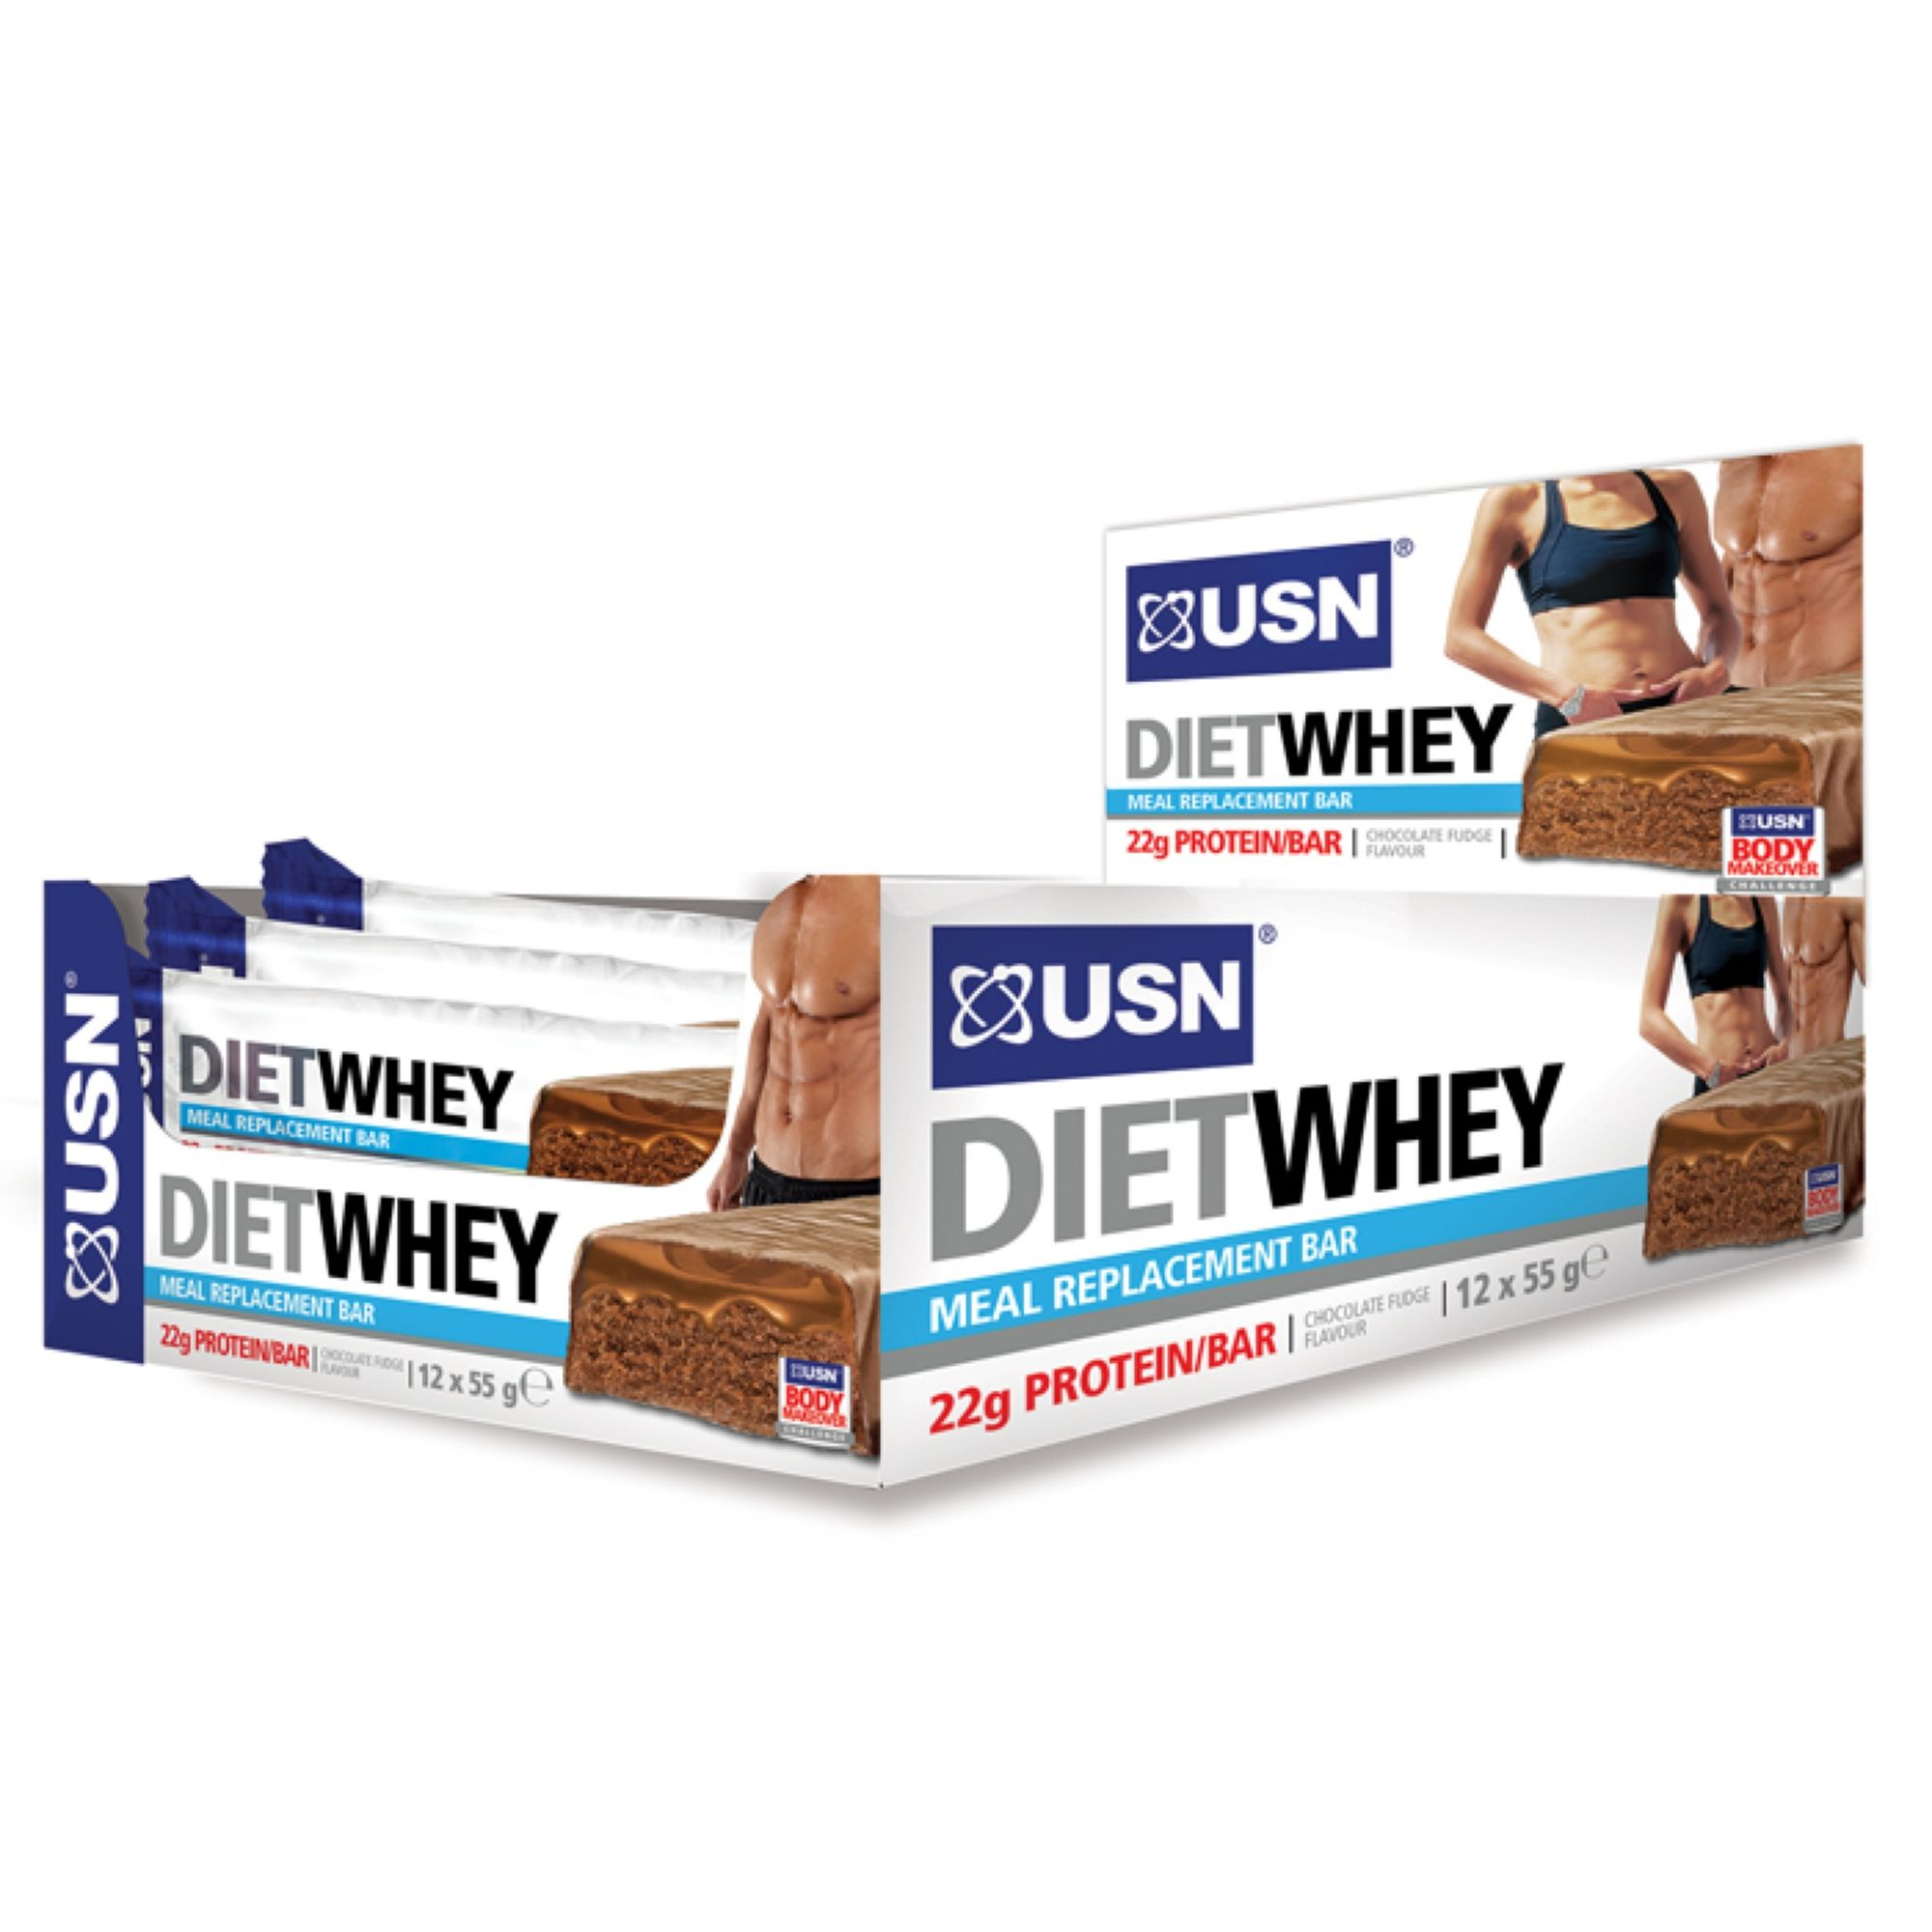 USN Diet Whey Meal Replacement Bar USN (Ultimate Sports